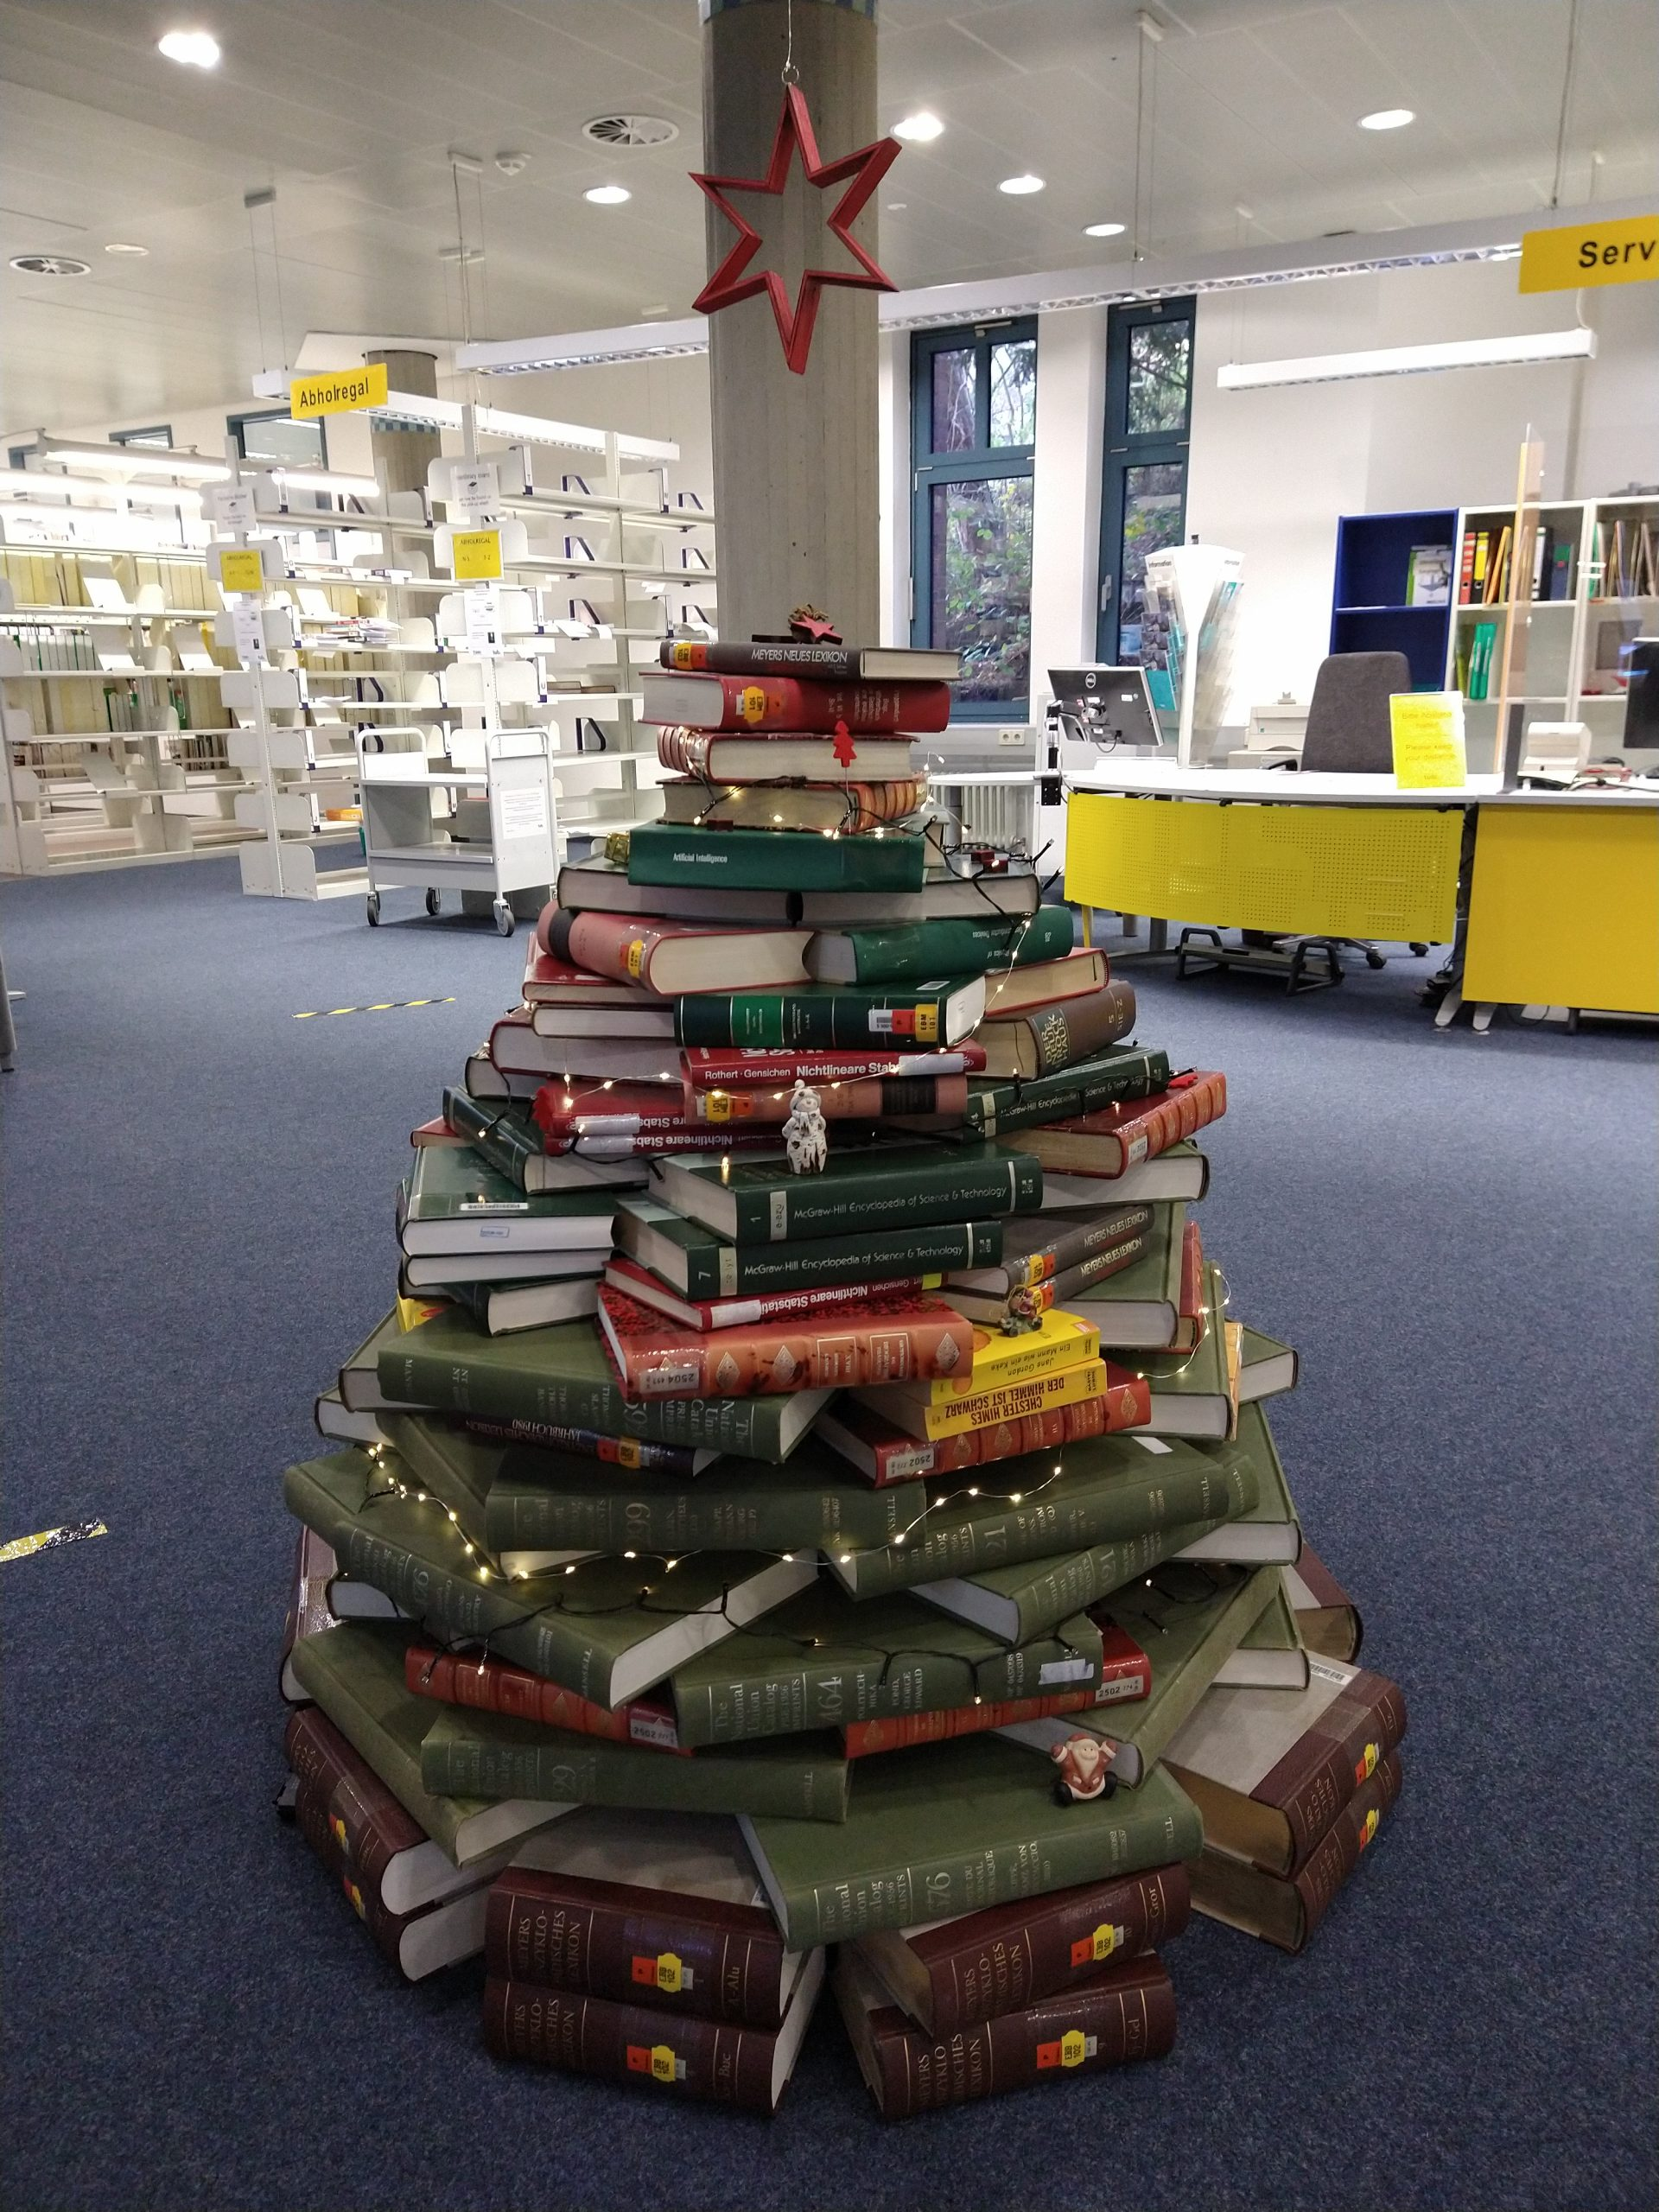 'Christmas tree' made out of books inside the library.